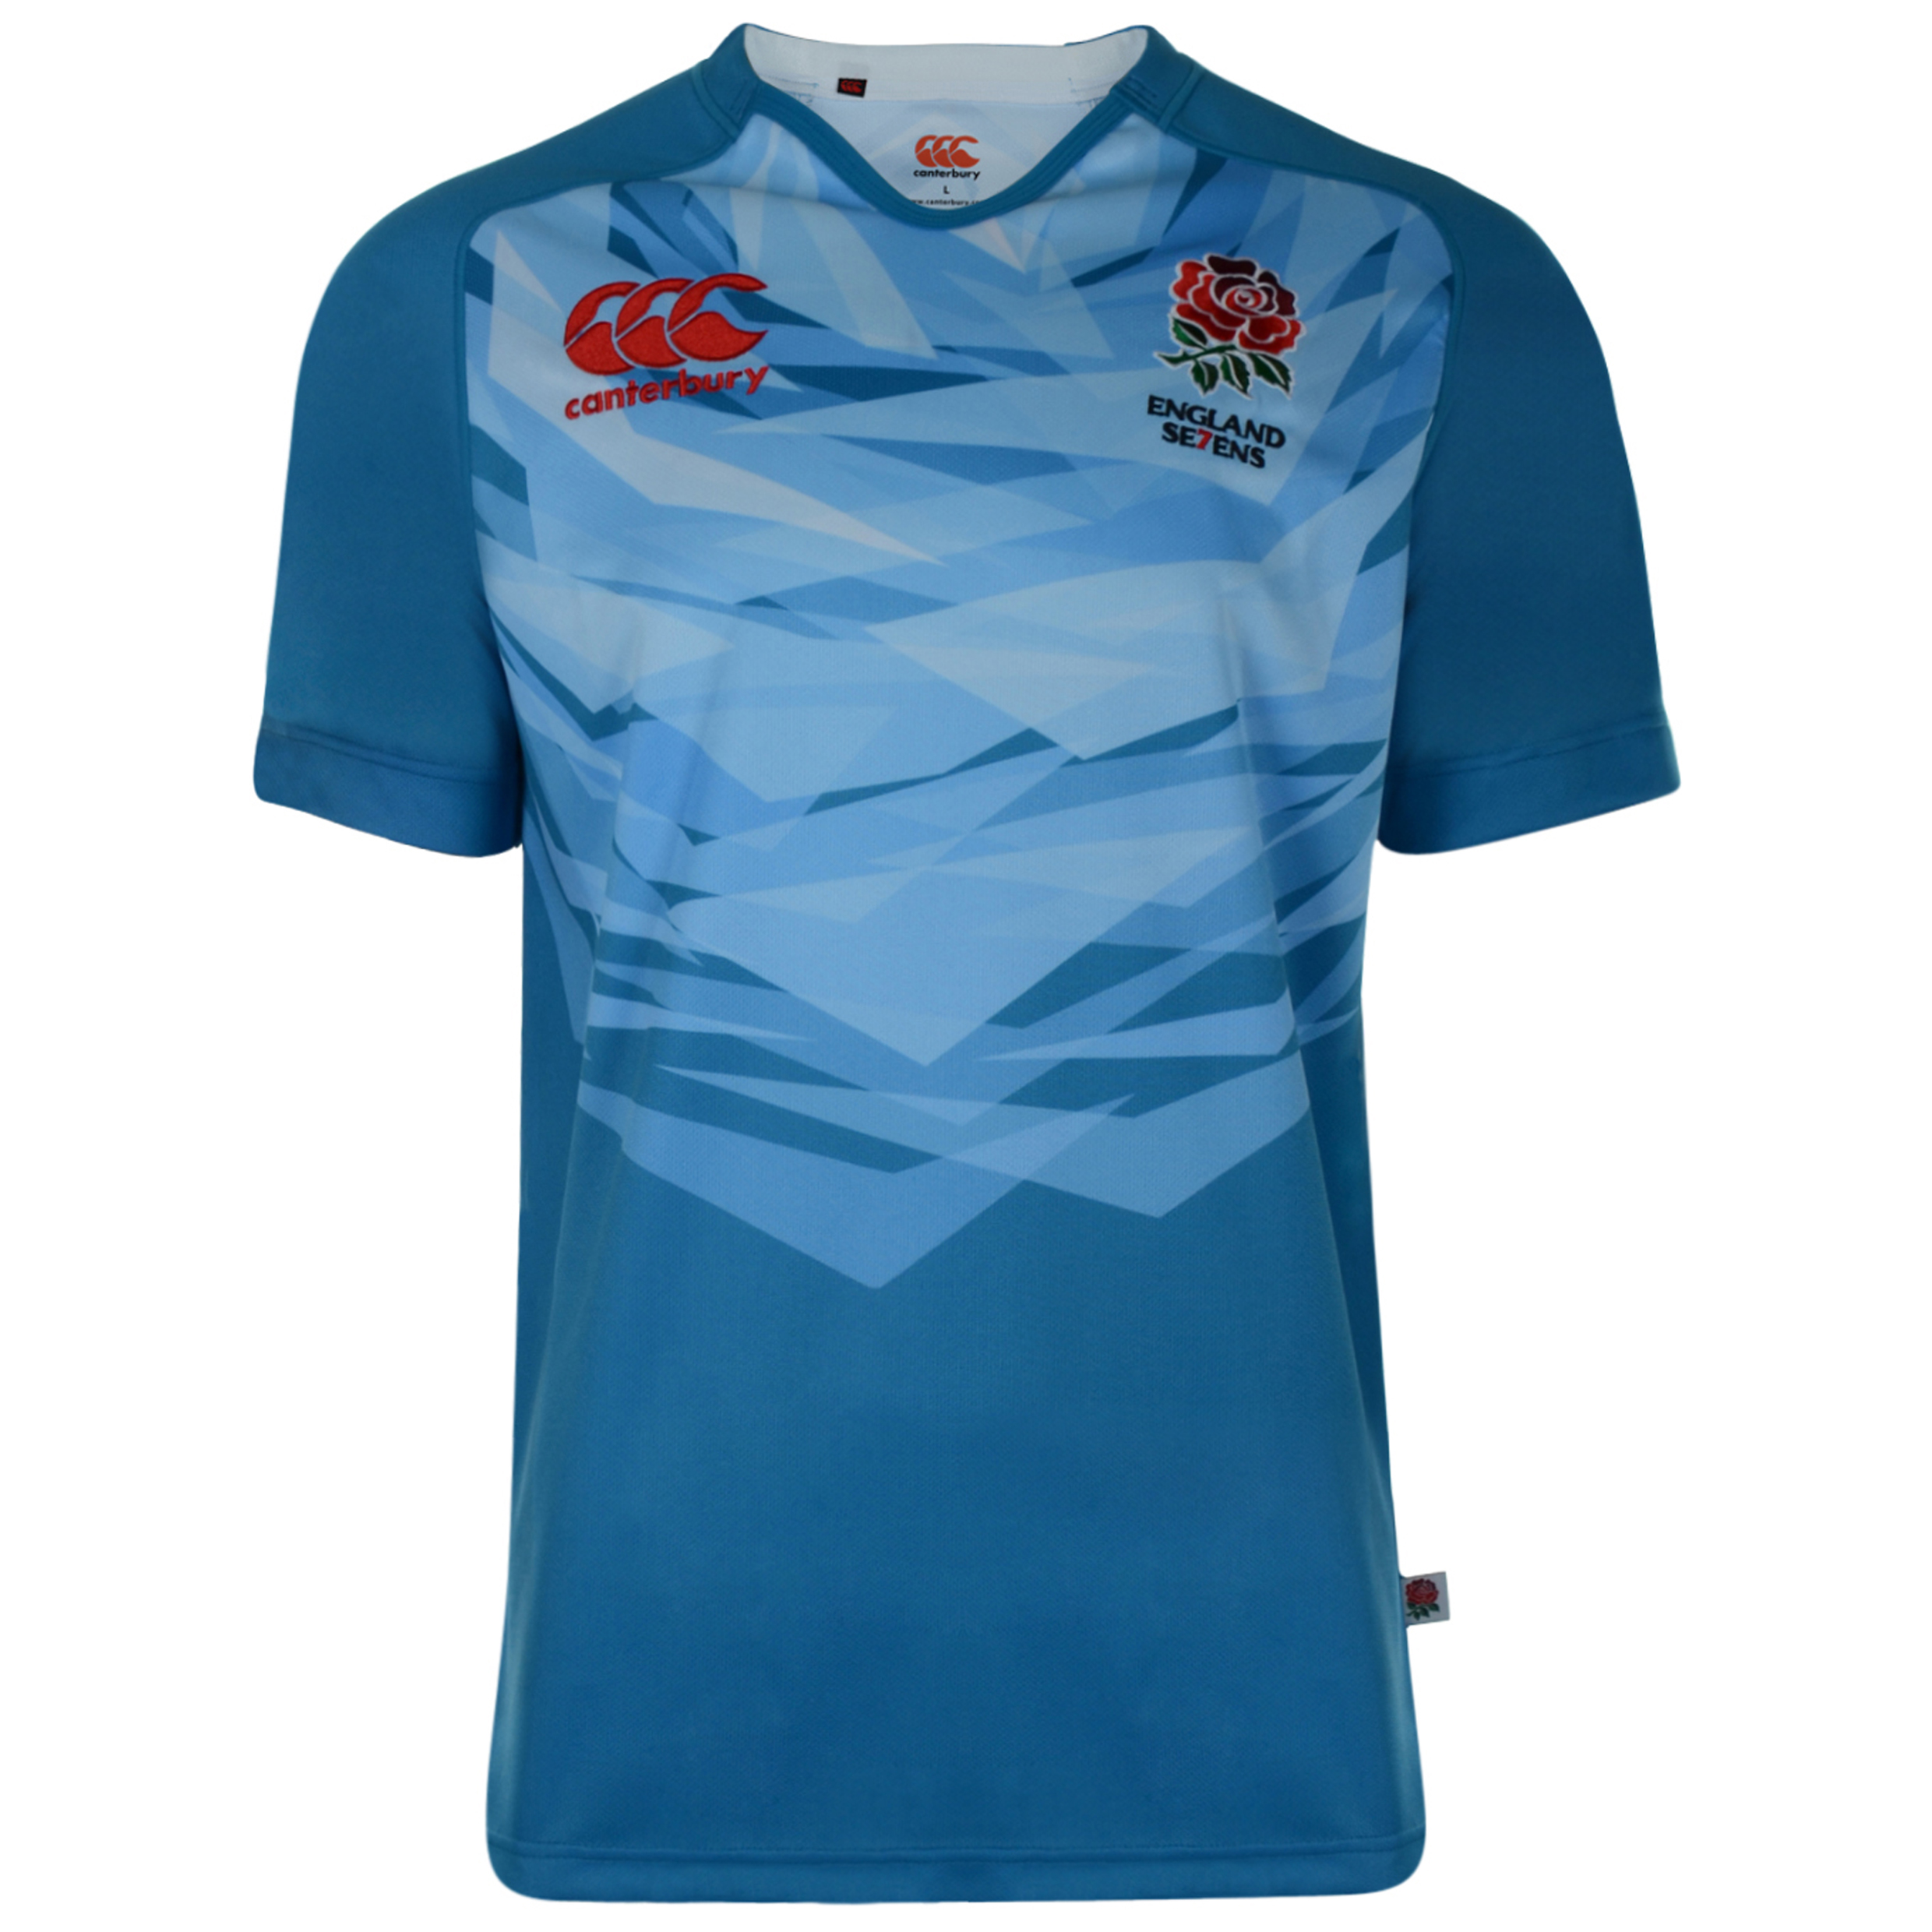 England Alternate 7inchS Rugby Pro Shirt 2012/13 S/S